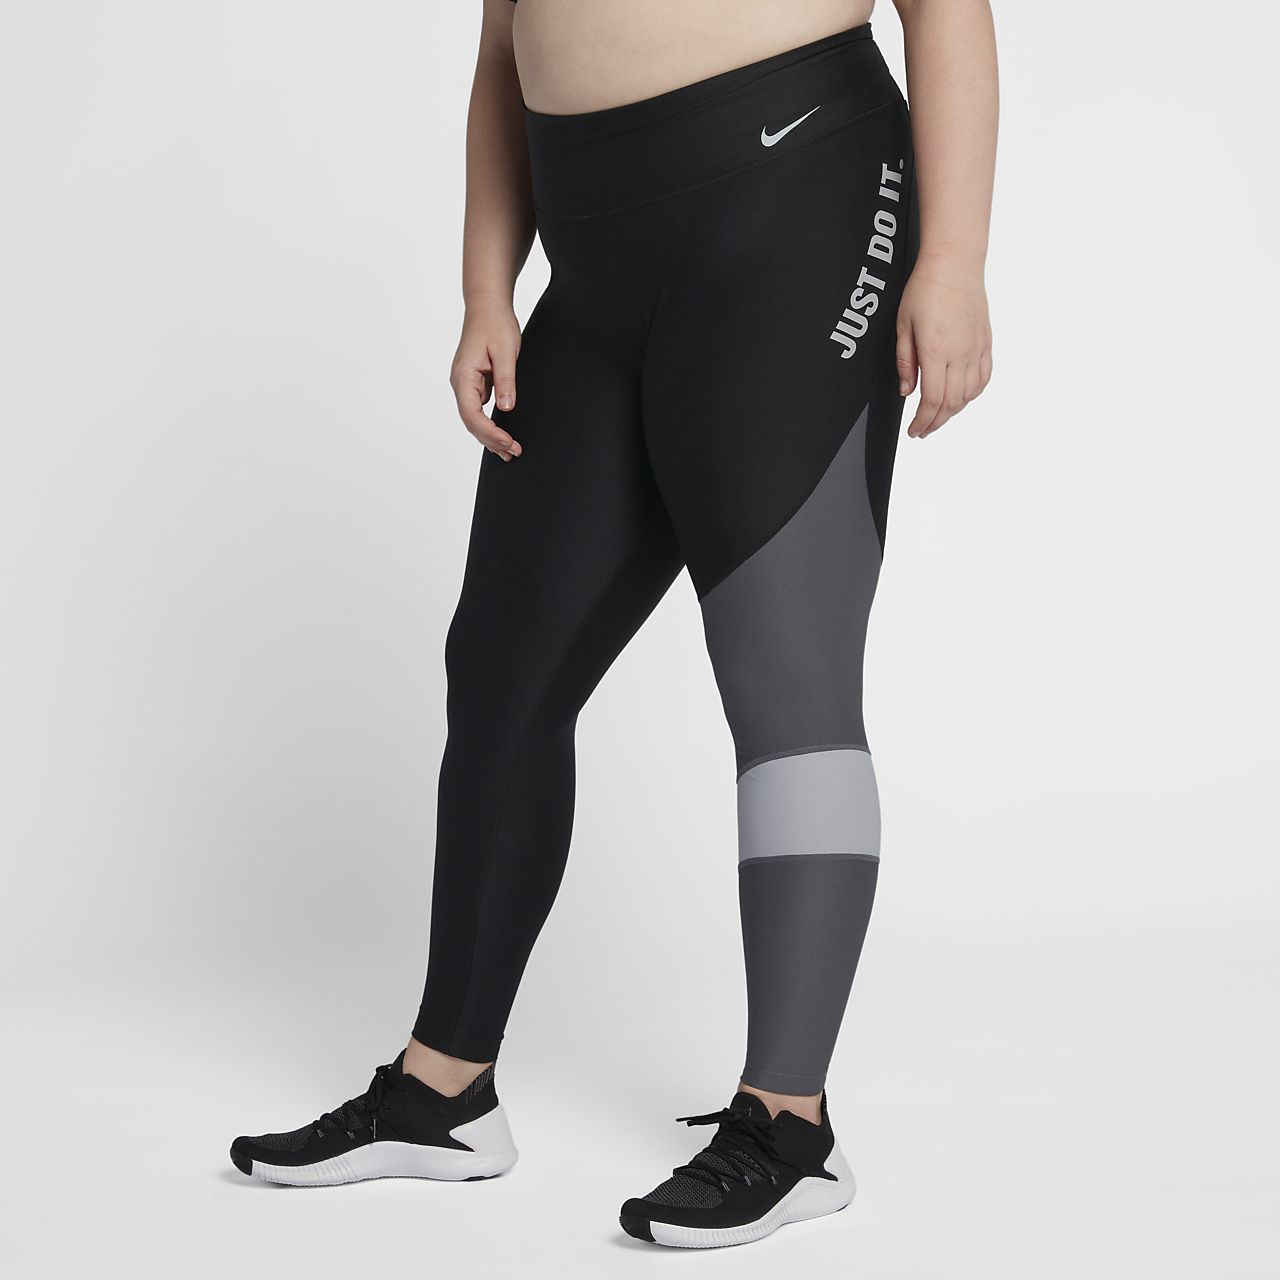 39f24bd1ed Nike Power Women s Training Tights (Plus Size). Nike.com GB